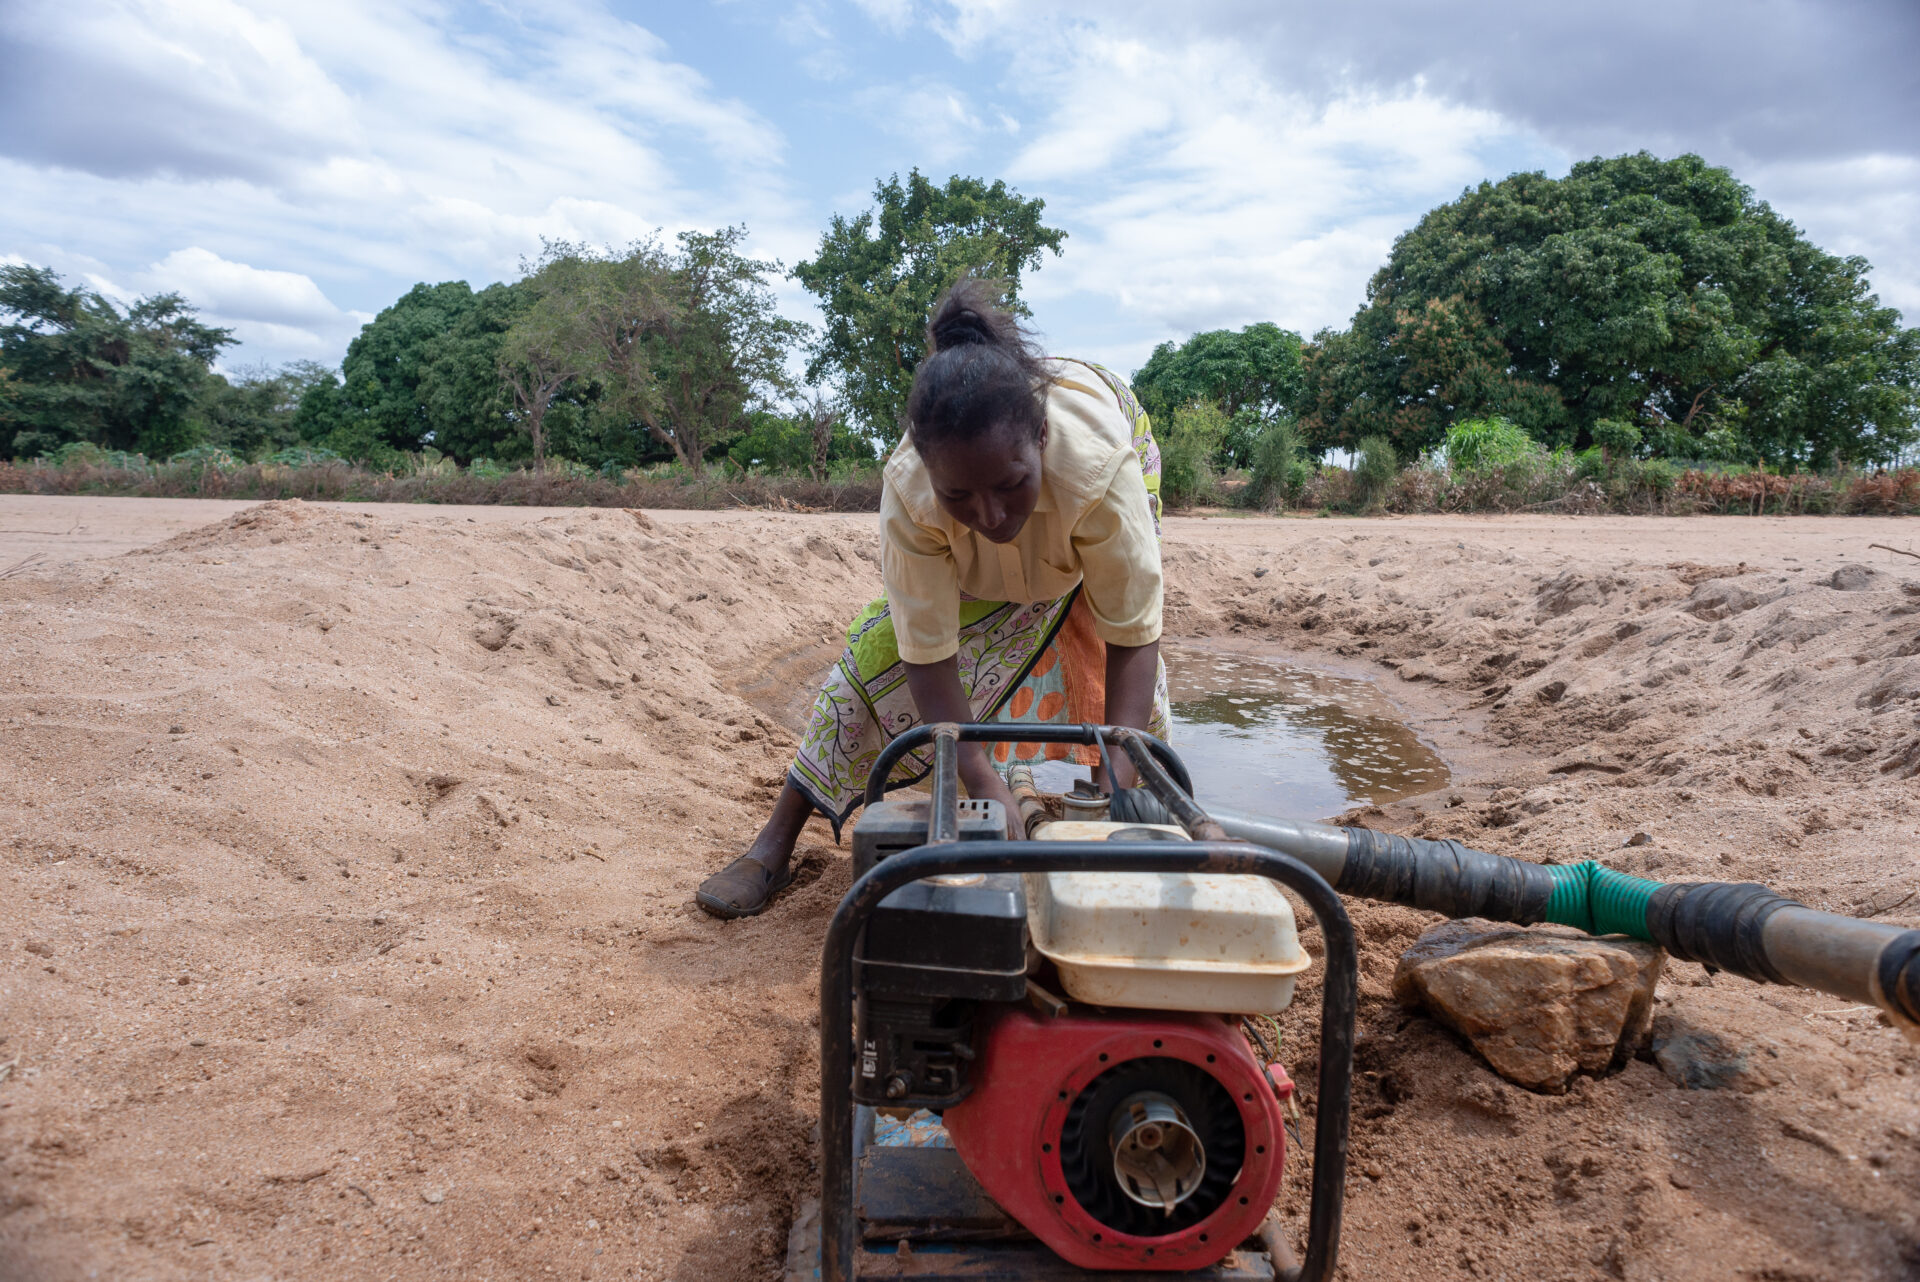 A women works in a dry riverbed to start up her water pump to irrigate crops